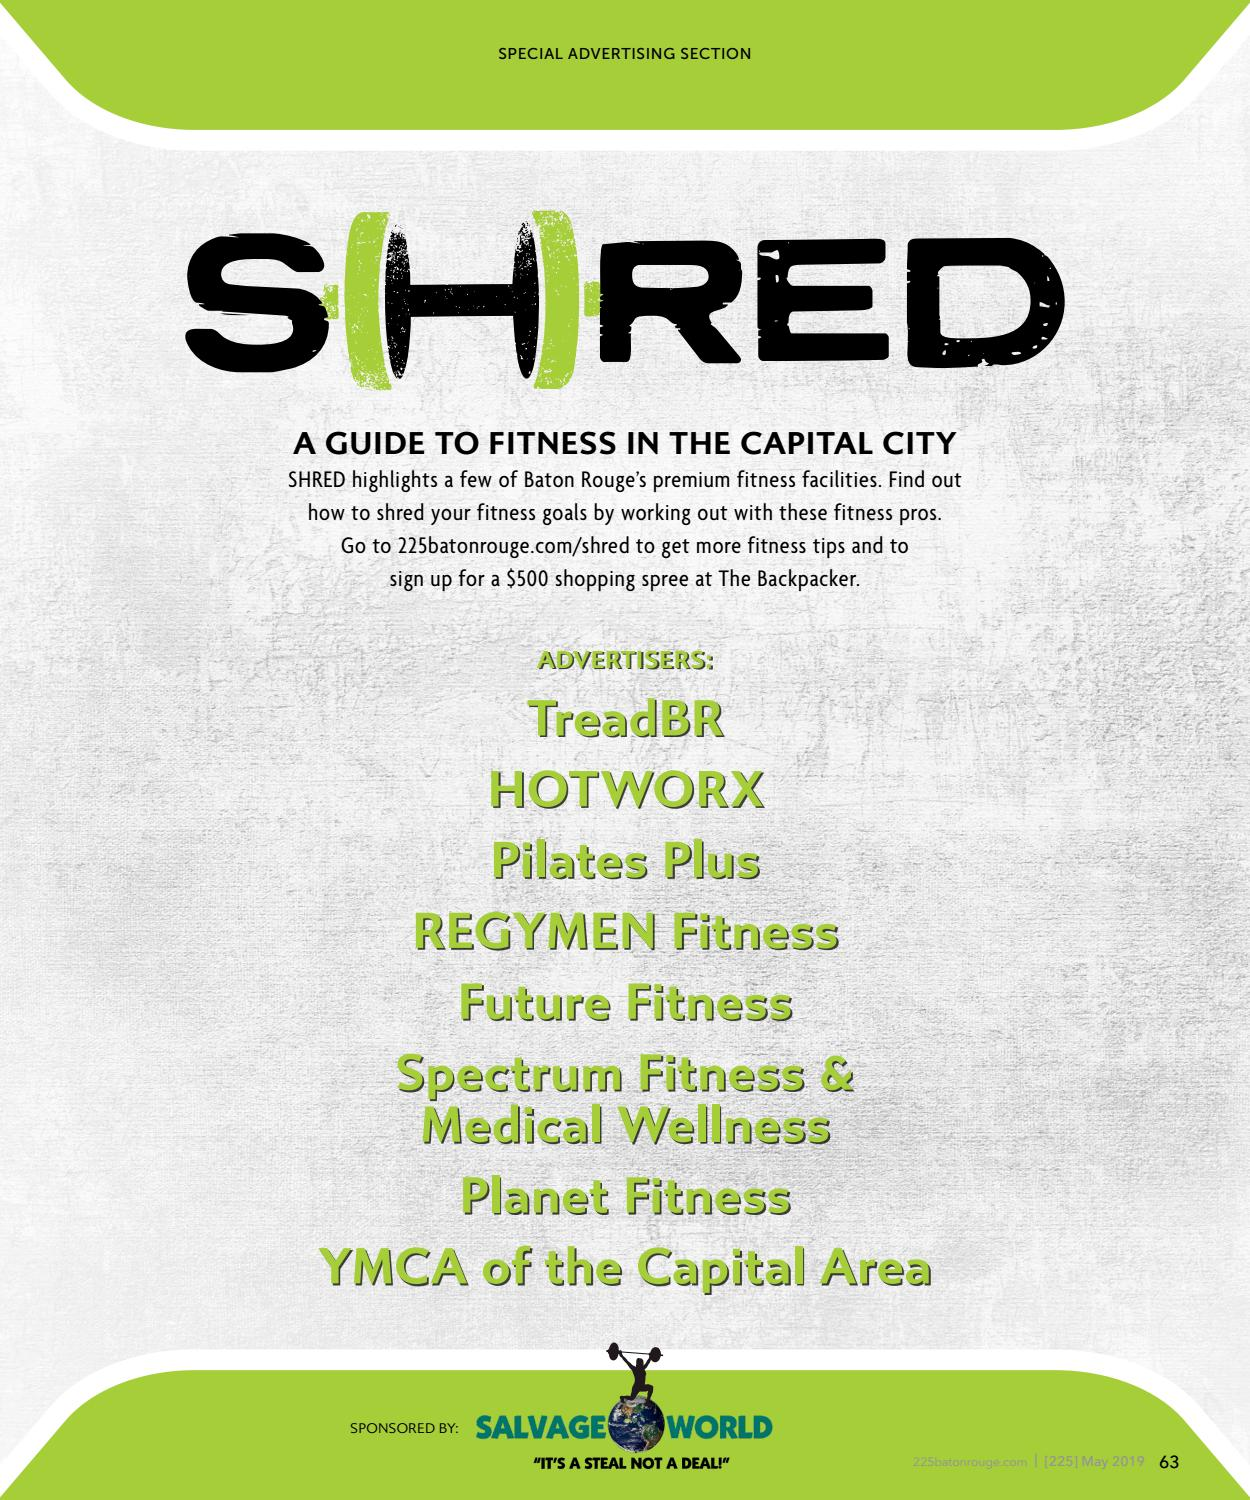 SHRED: A Guide to Fitness in the Capital City by Baton Rouge